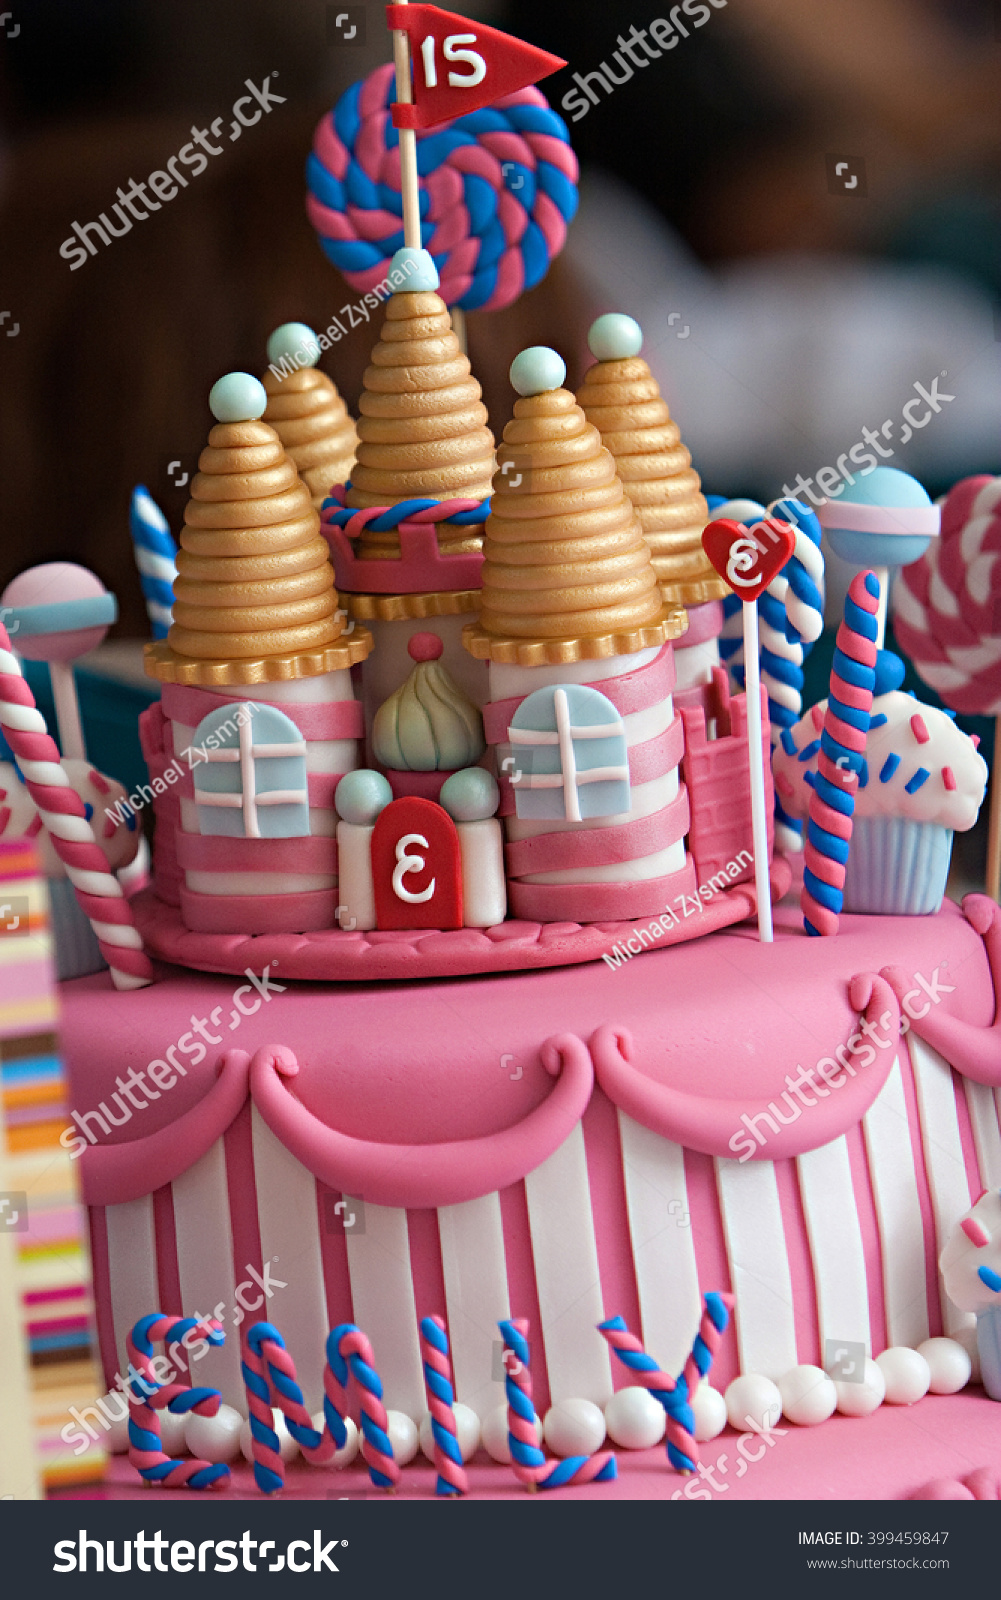 Royalty Free A Fancy Birthday Cake With A Candyland 399459847